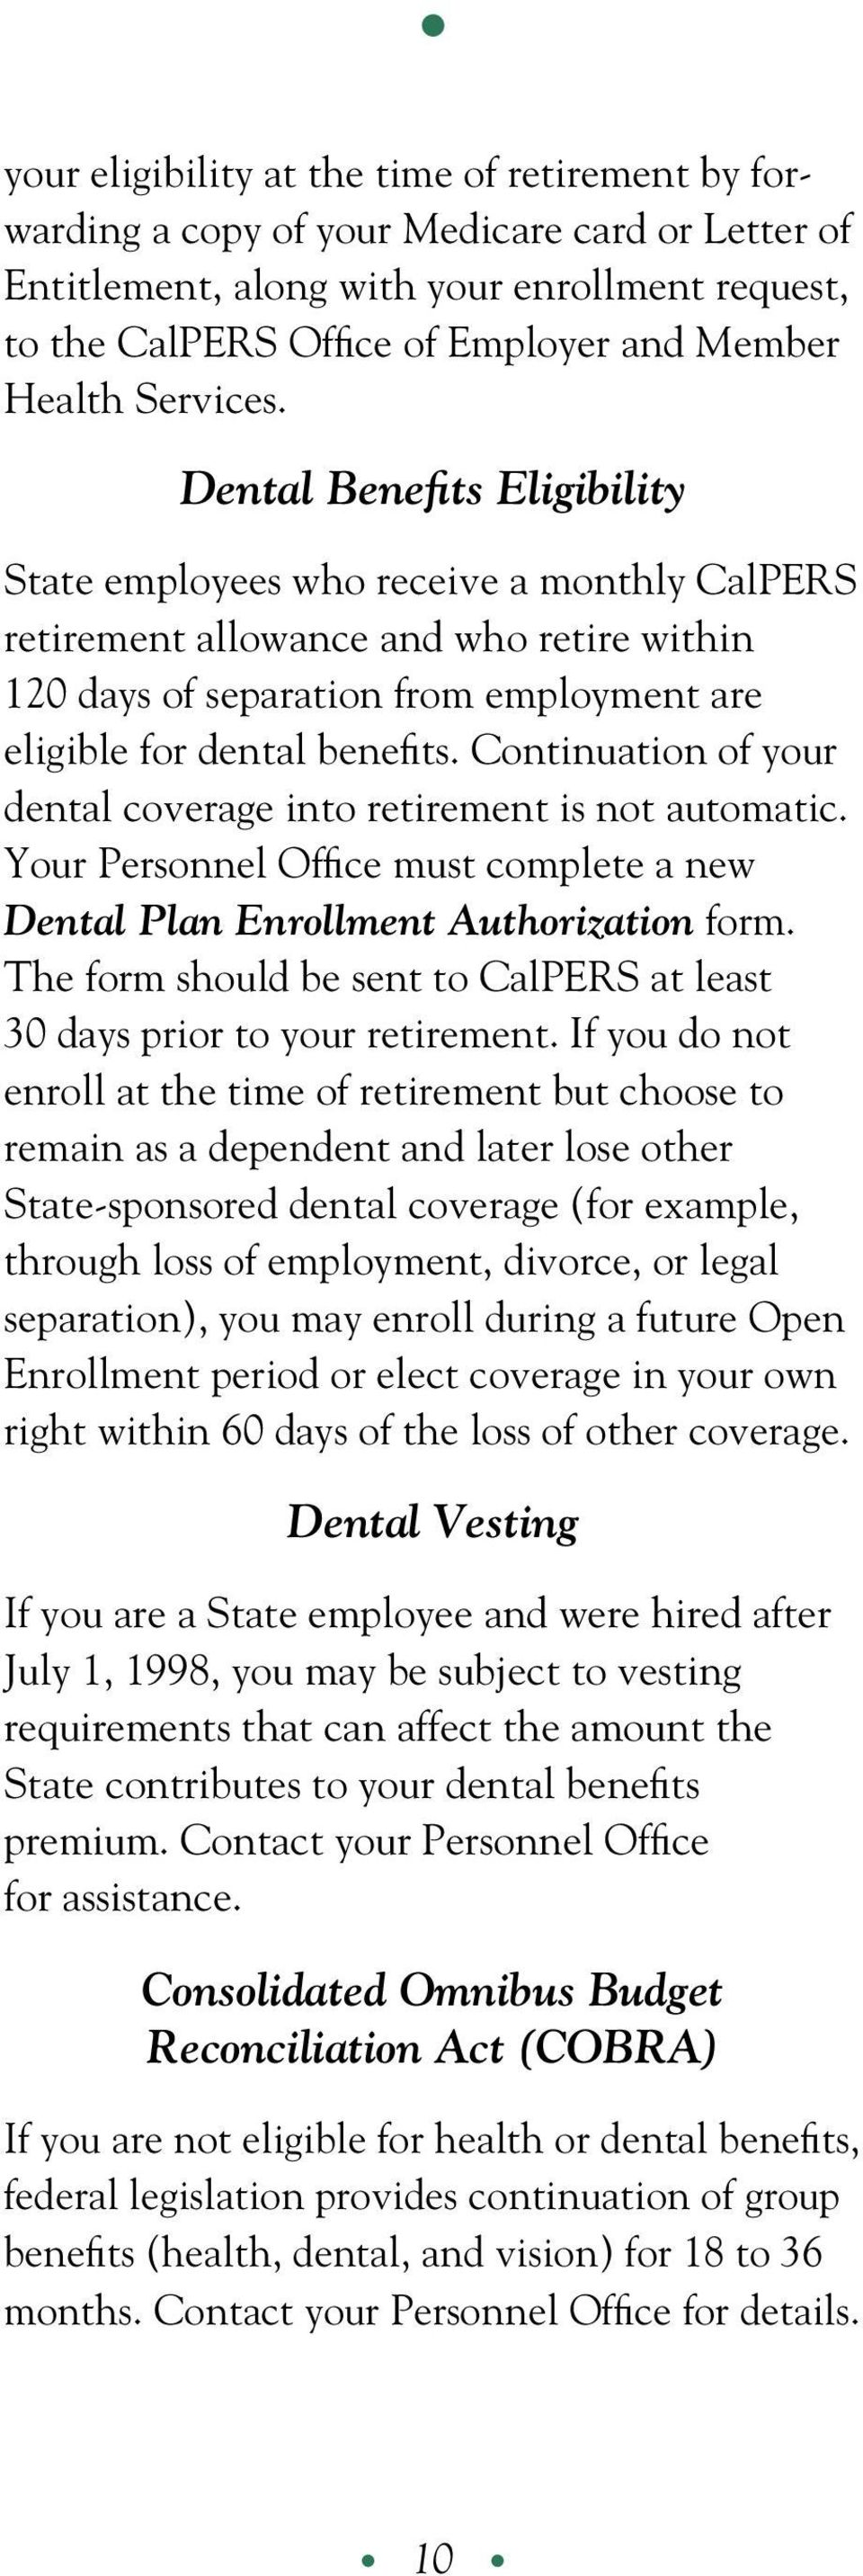 Continuation of your dental coverage into retirement is not automatic. Your Personnel Office must complete a new Dental Plan Enrollment Authorization form.